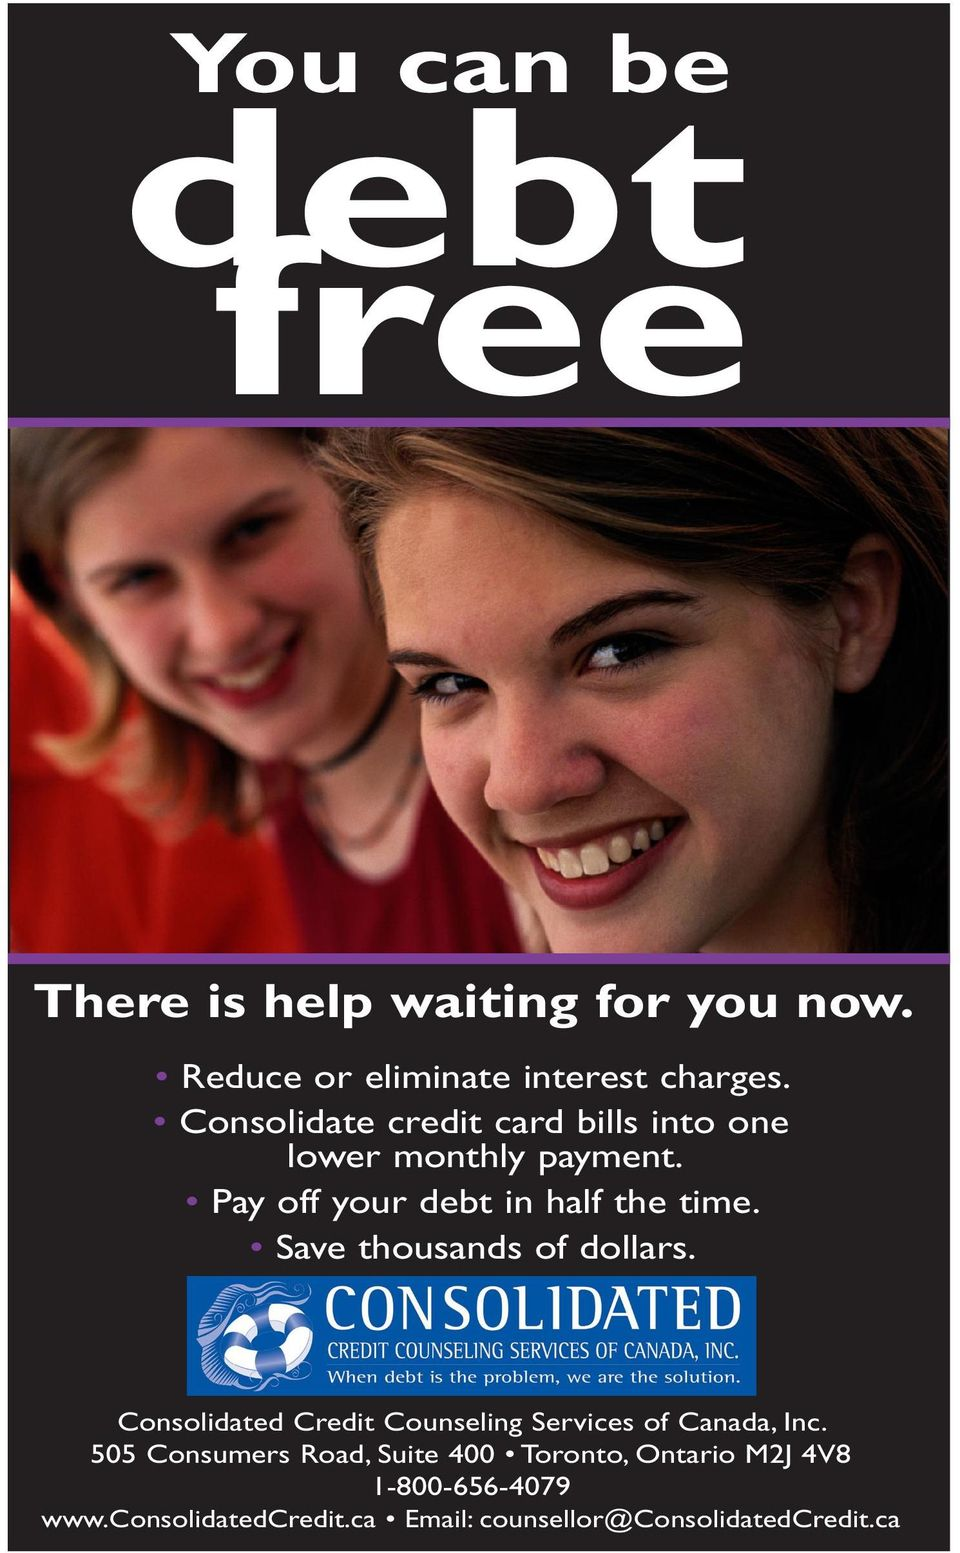 Save thousands of dollars. Consolidated Credit Counseling Services of Canada, Inc.